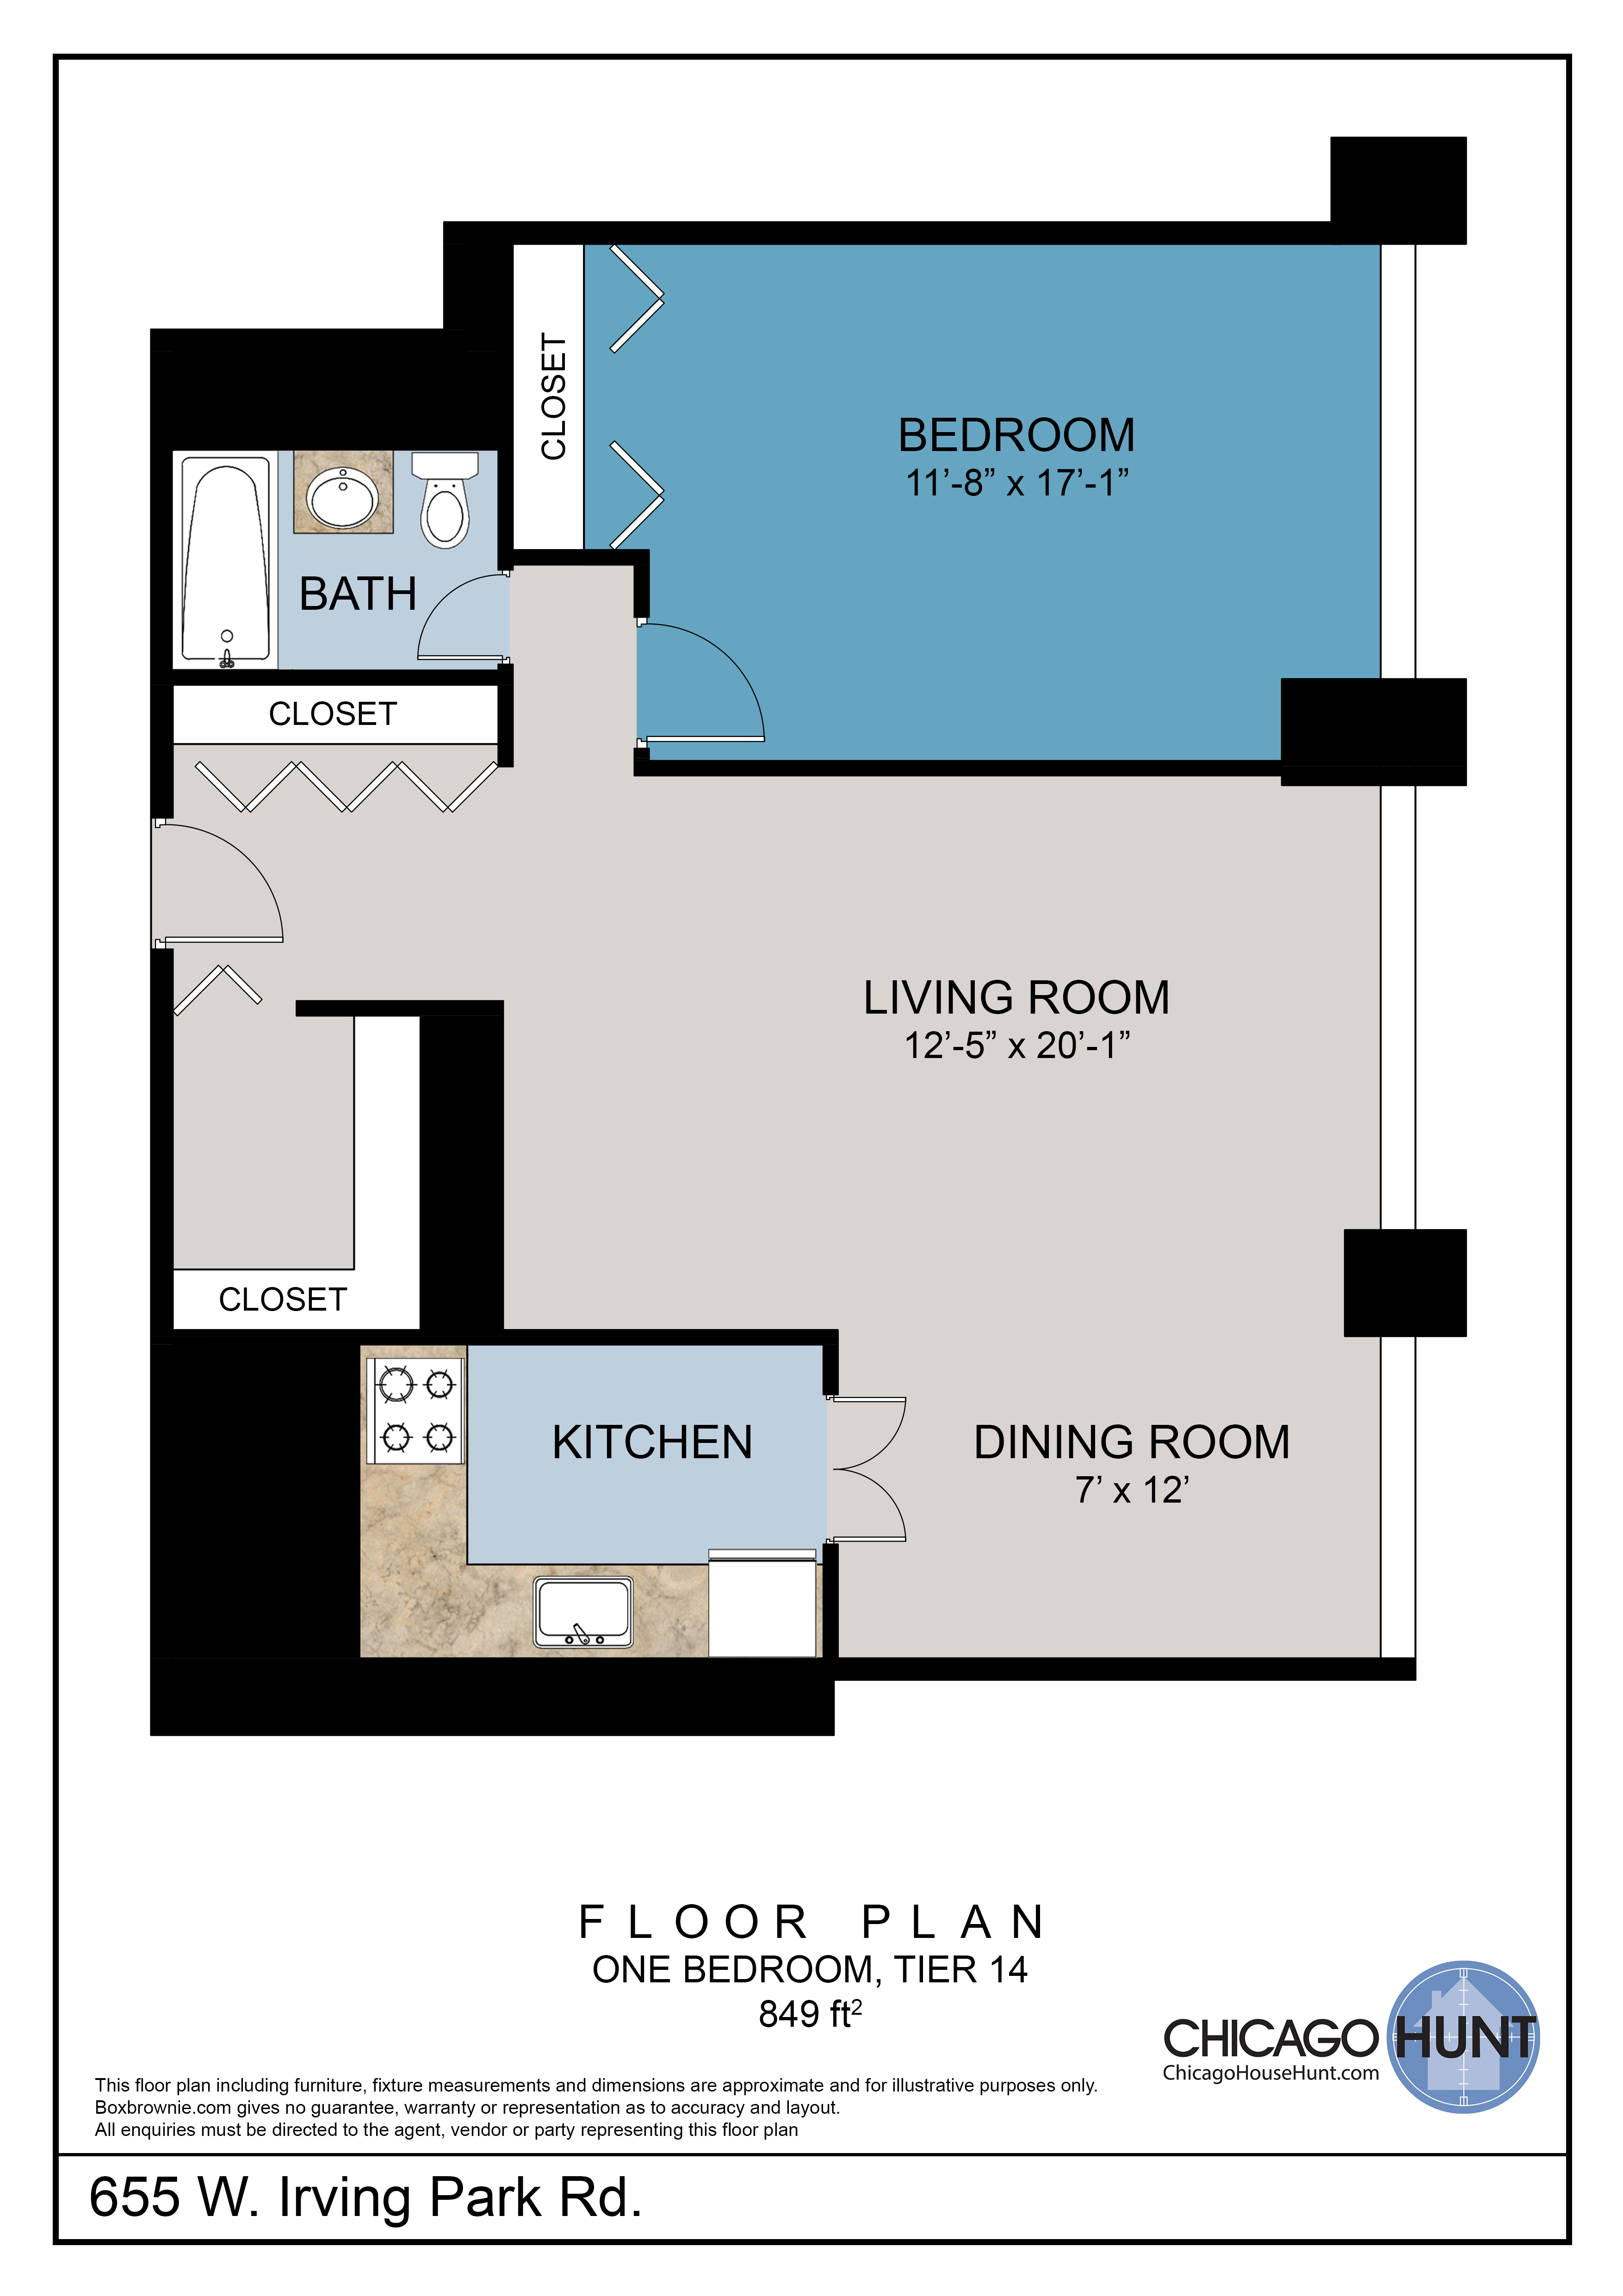 655 Irving Park, Park Place Towere - Floor Plan - Tier 14